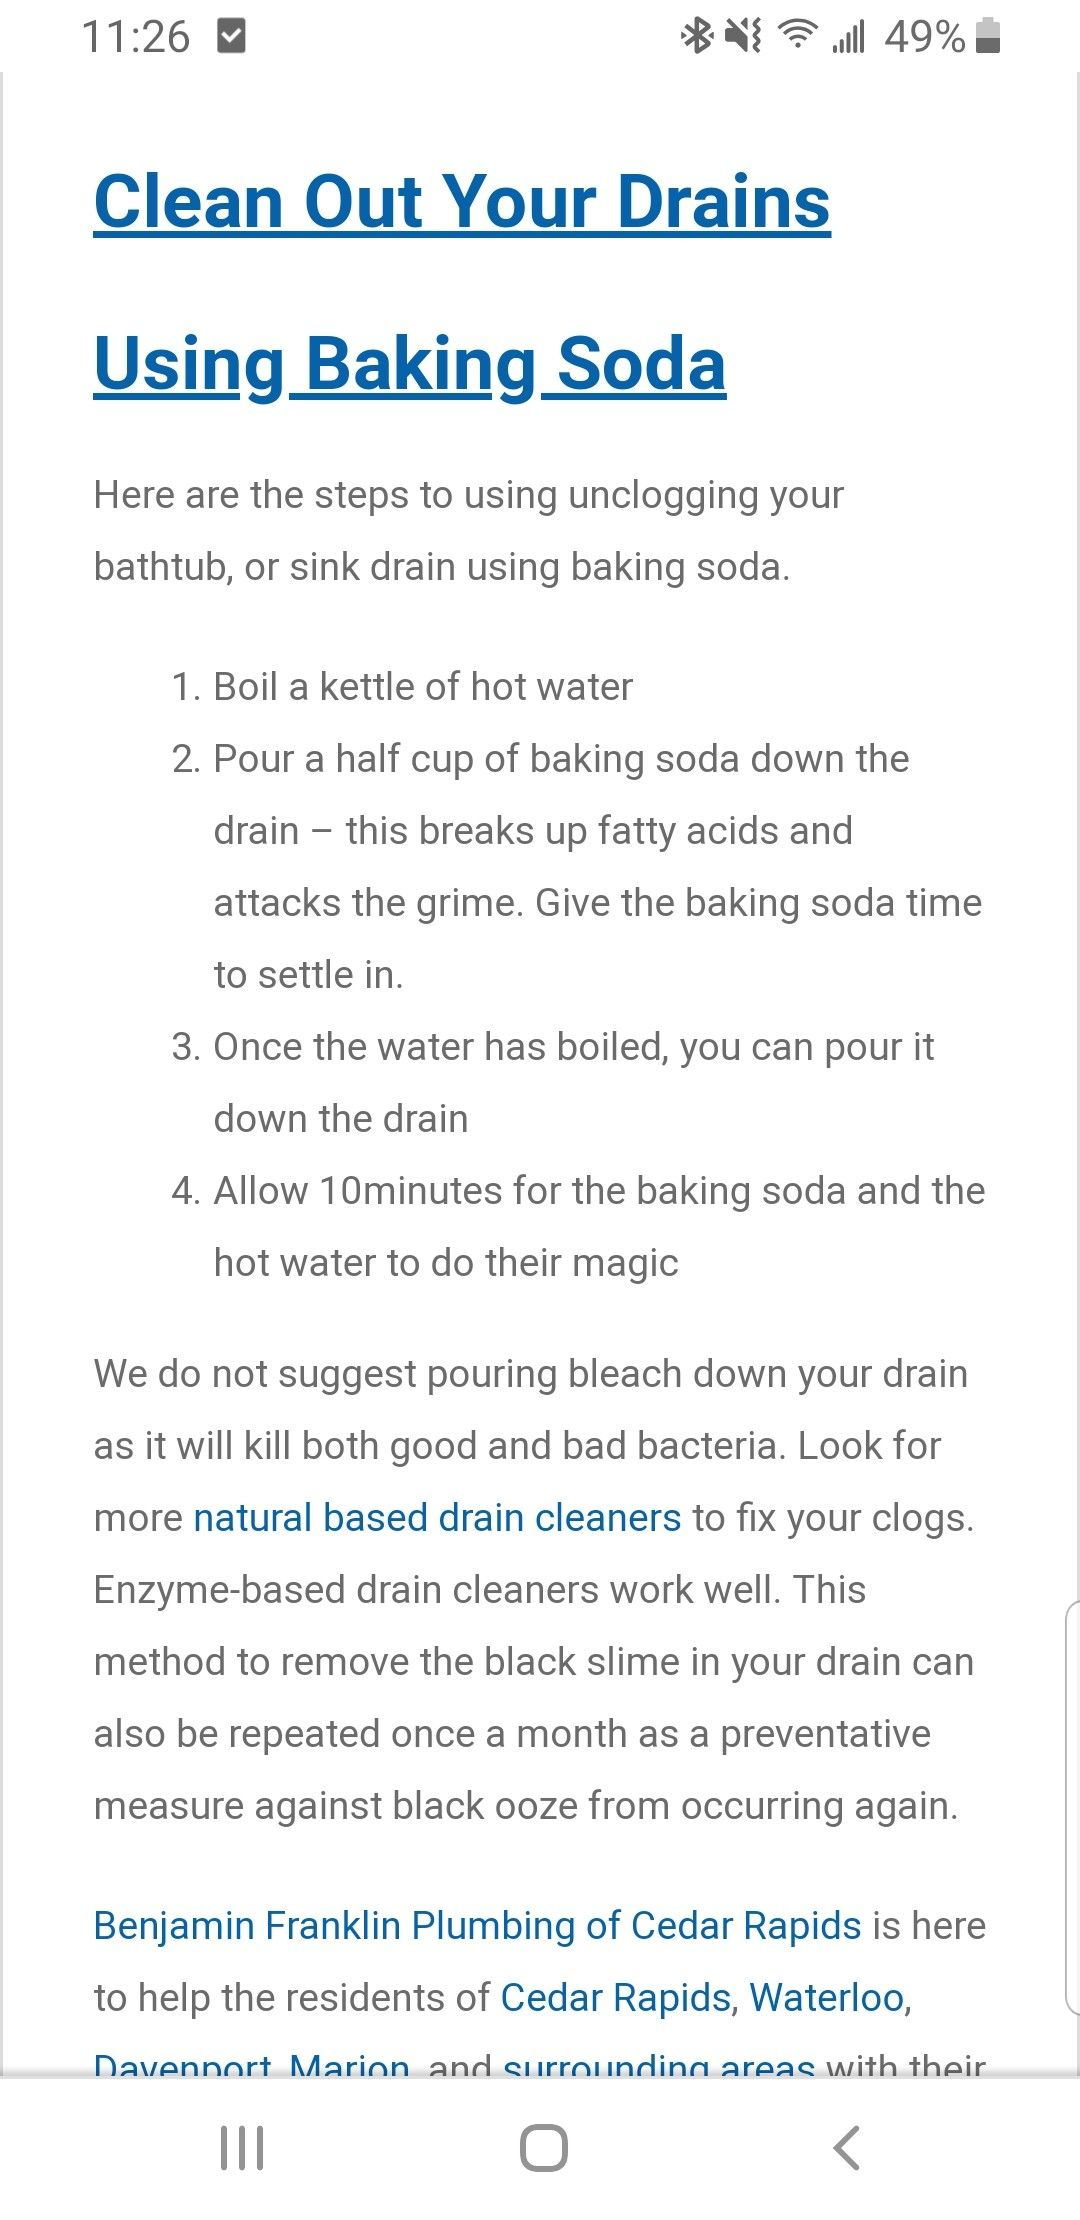 Pin by Angela Wentink on cleaning (With images) Sink